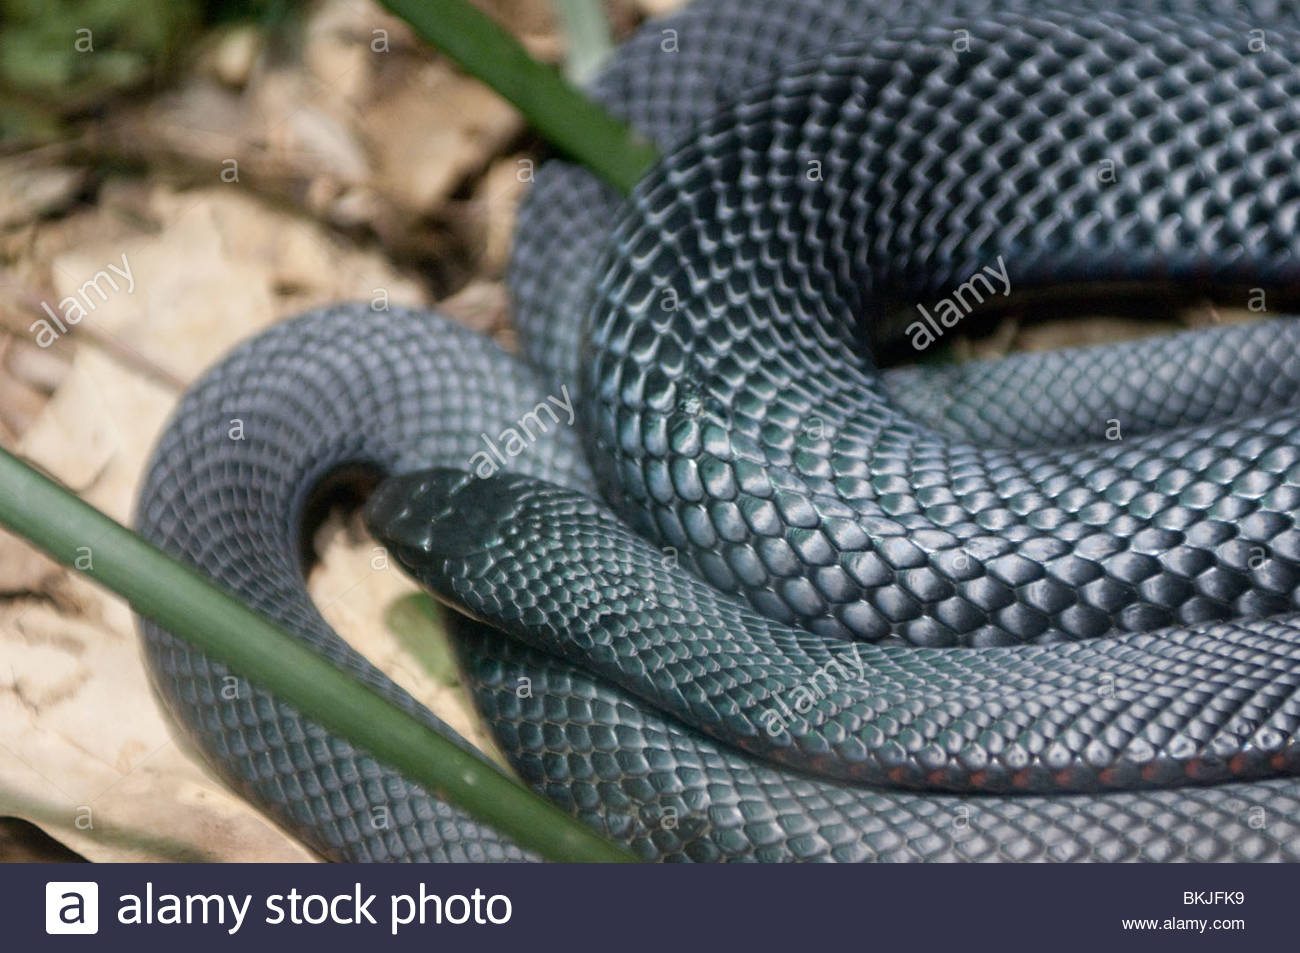 Red-bellied Black Snake clipart #11, Download drawings